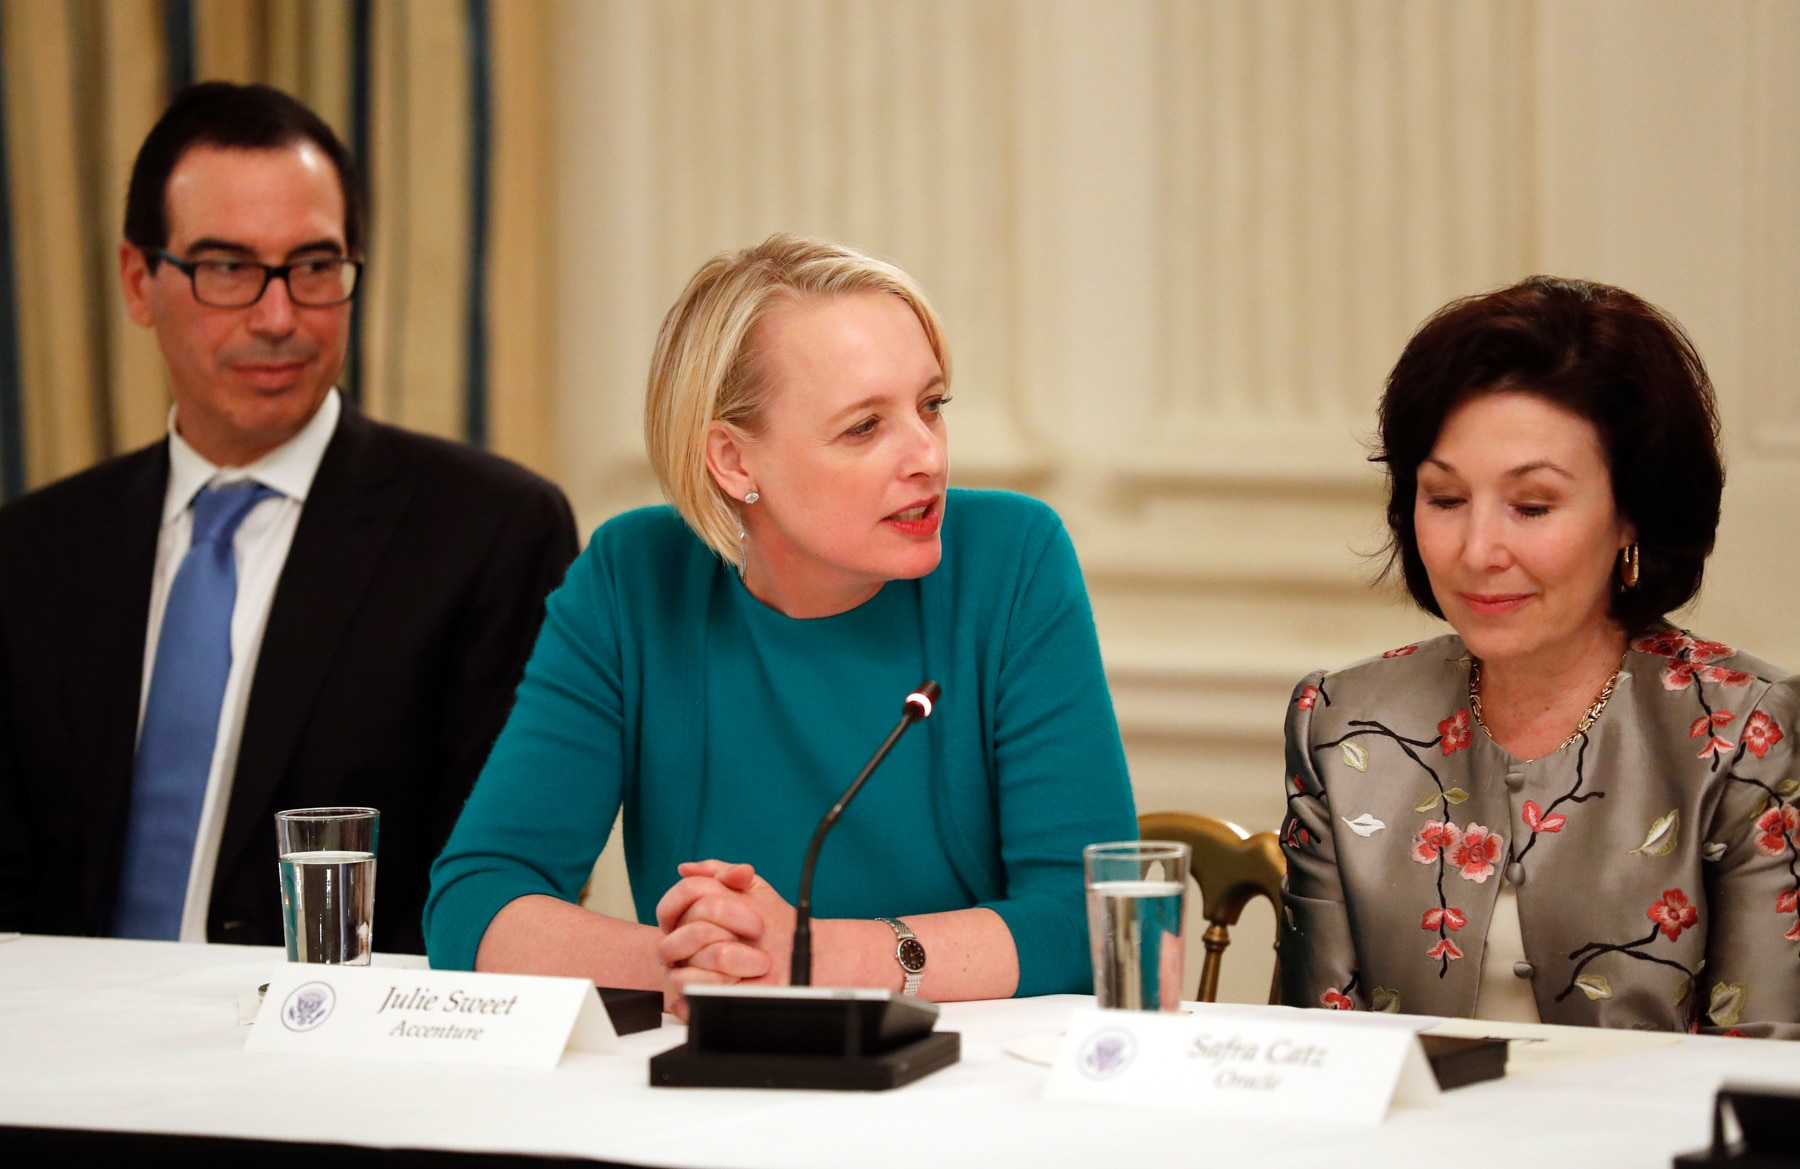 Steve Mnuchin seated with Julie Sweet (center) and Safra Catz (right) (© AP Images)